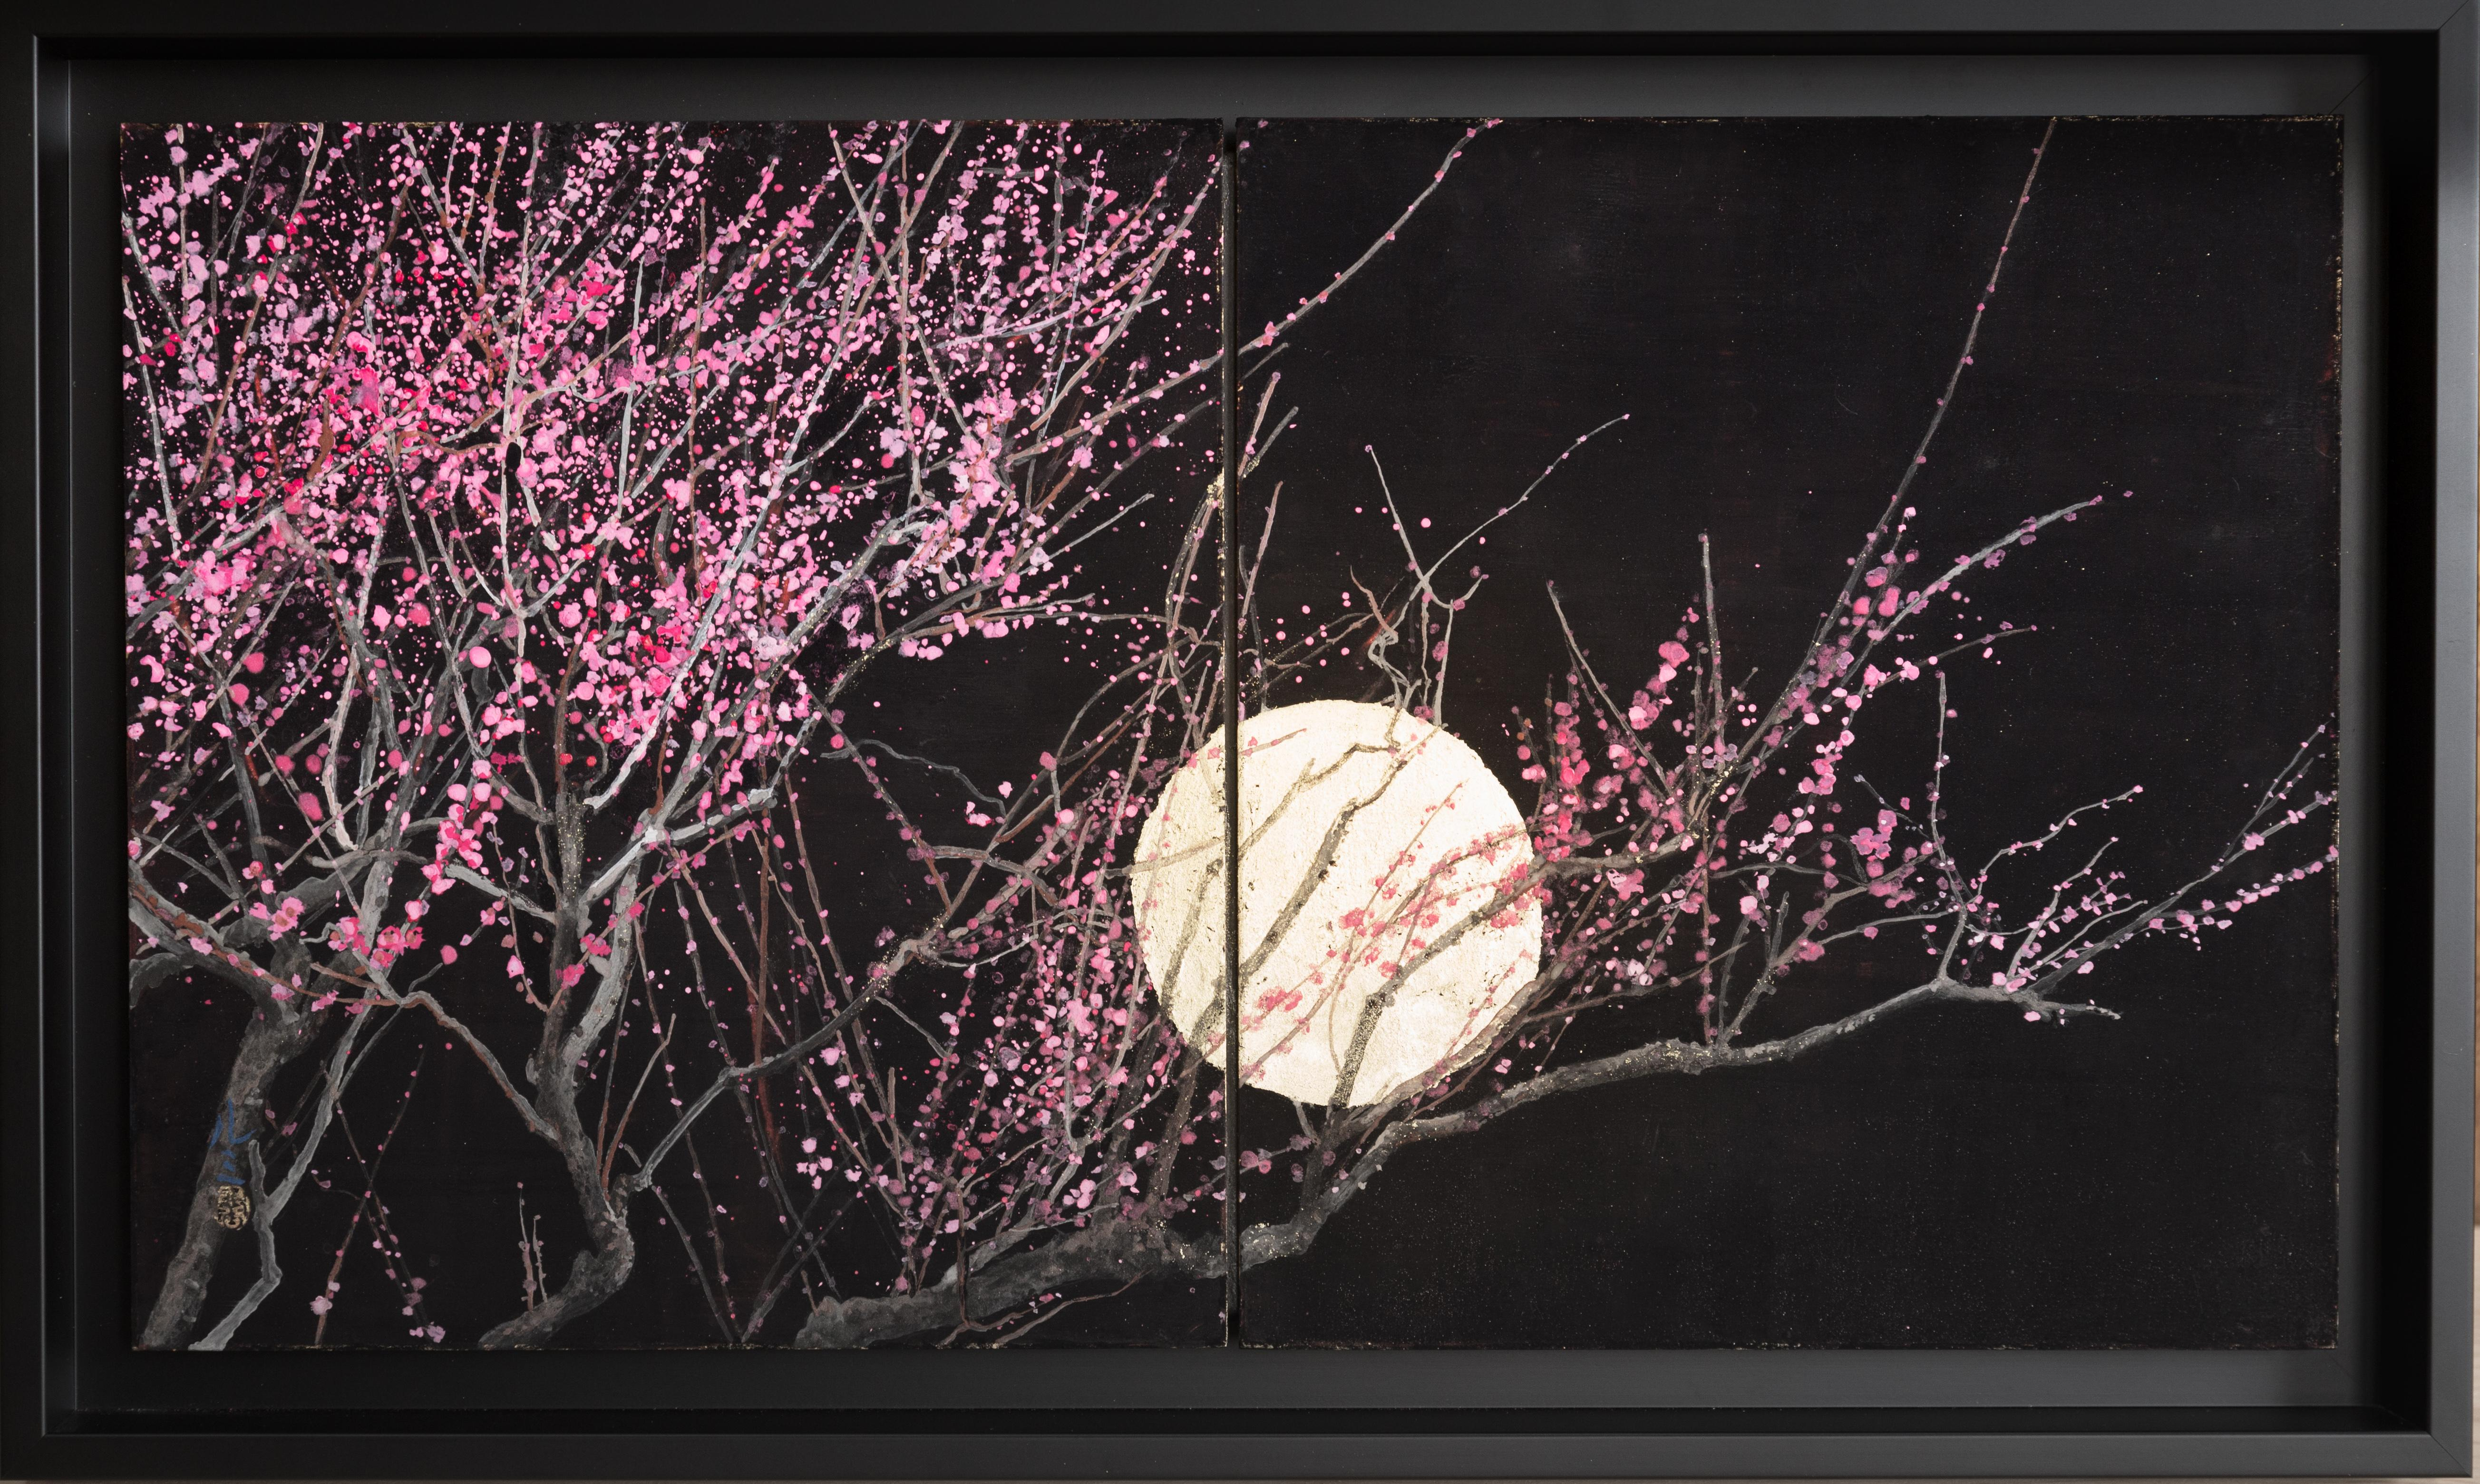 Nocturn III, Japanese Painting